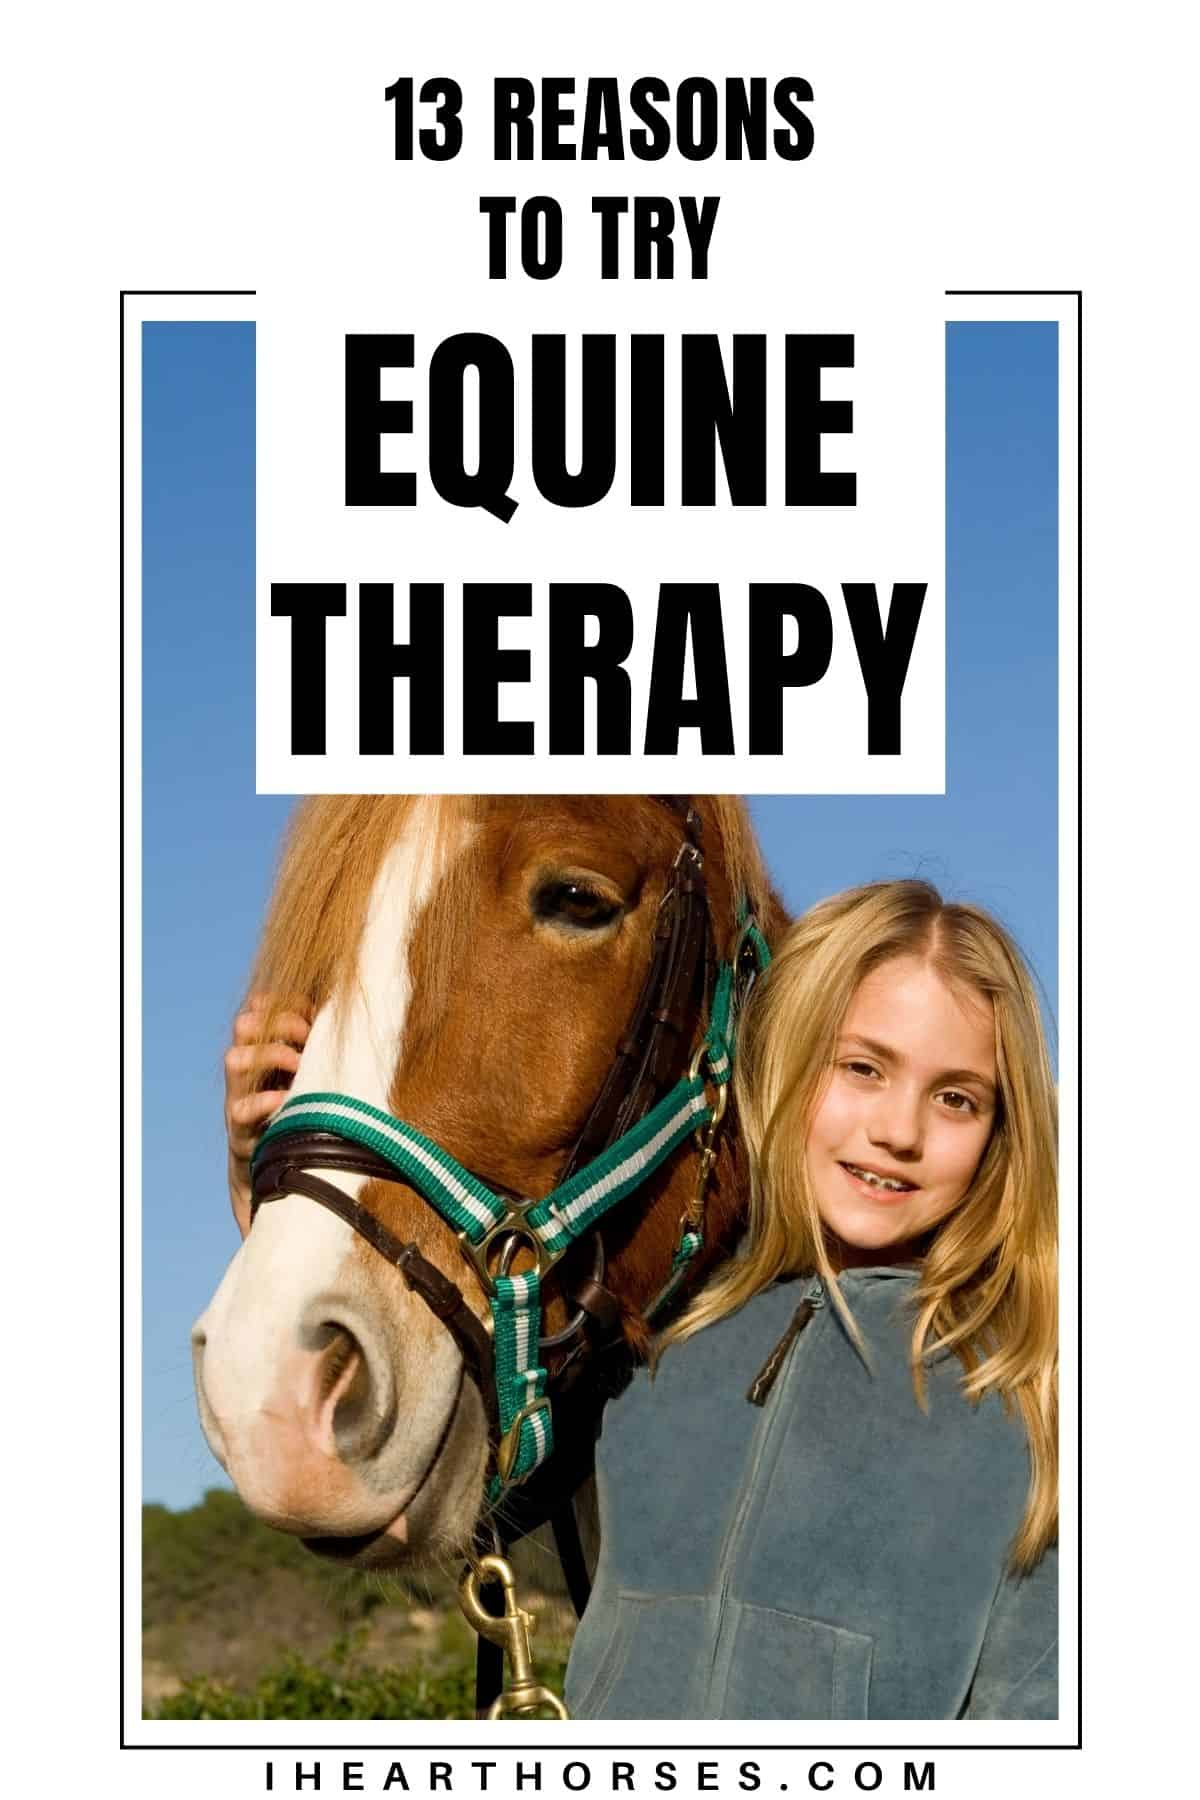 Girl holding reign of horse with white batnner saying reasons to try equine therapy